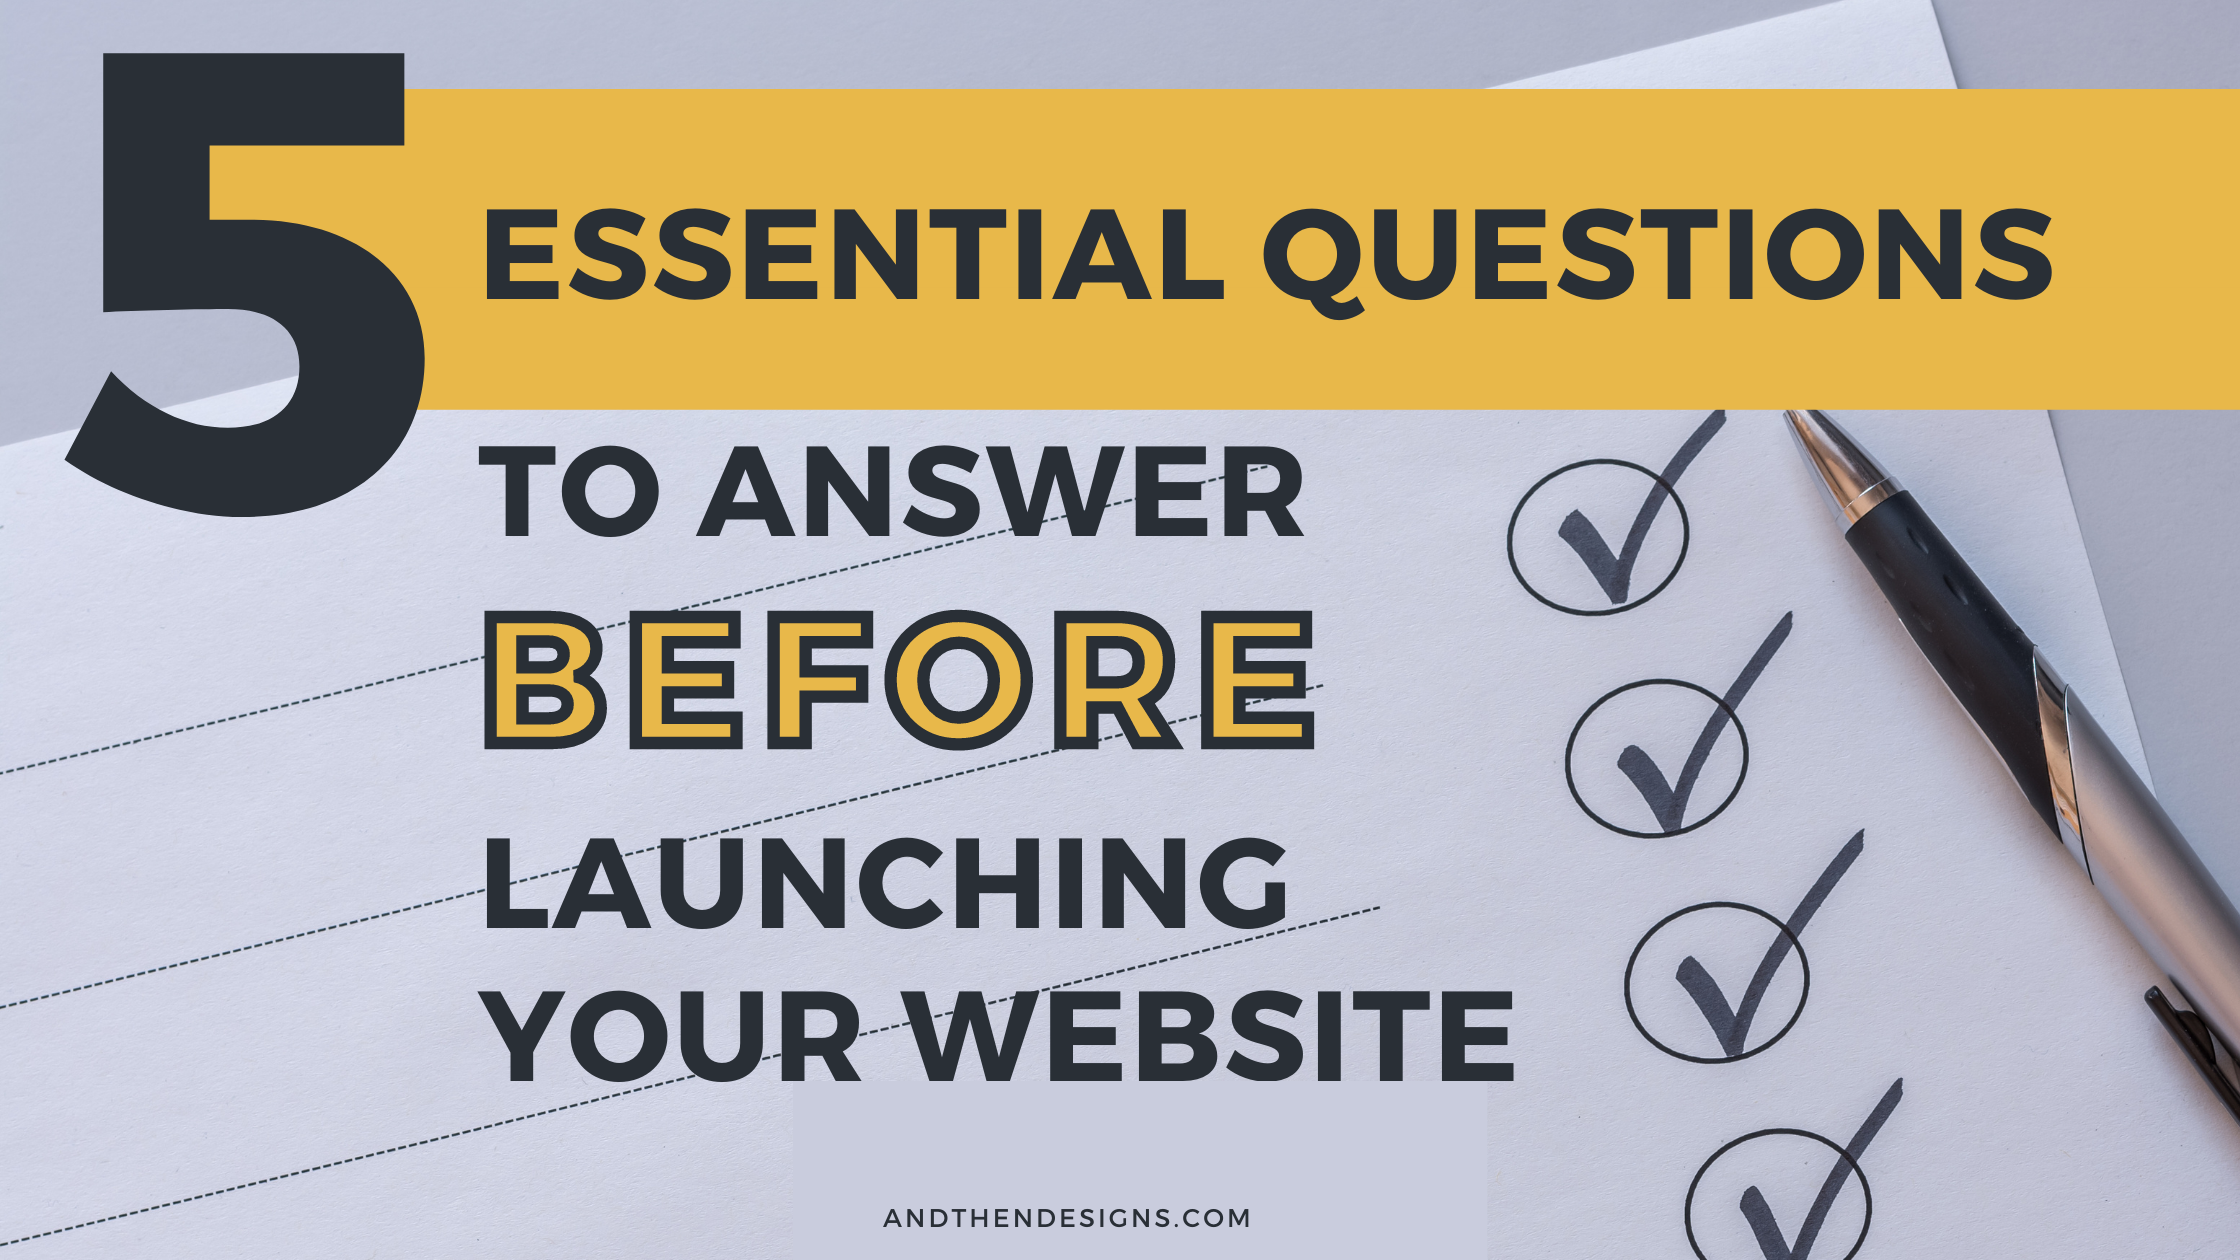 Five Essential Questions to Answer Before Launching Your Website